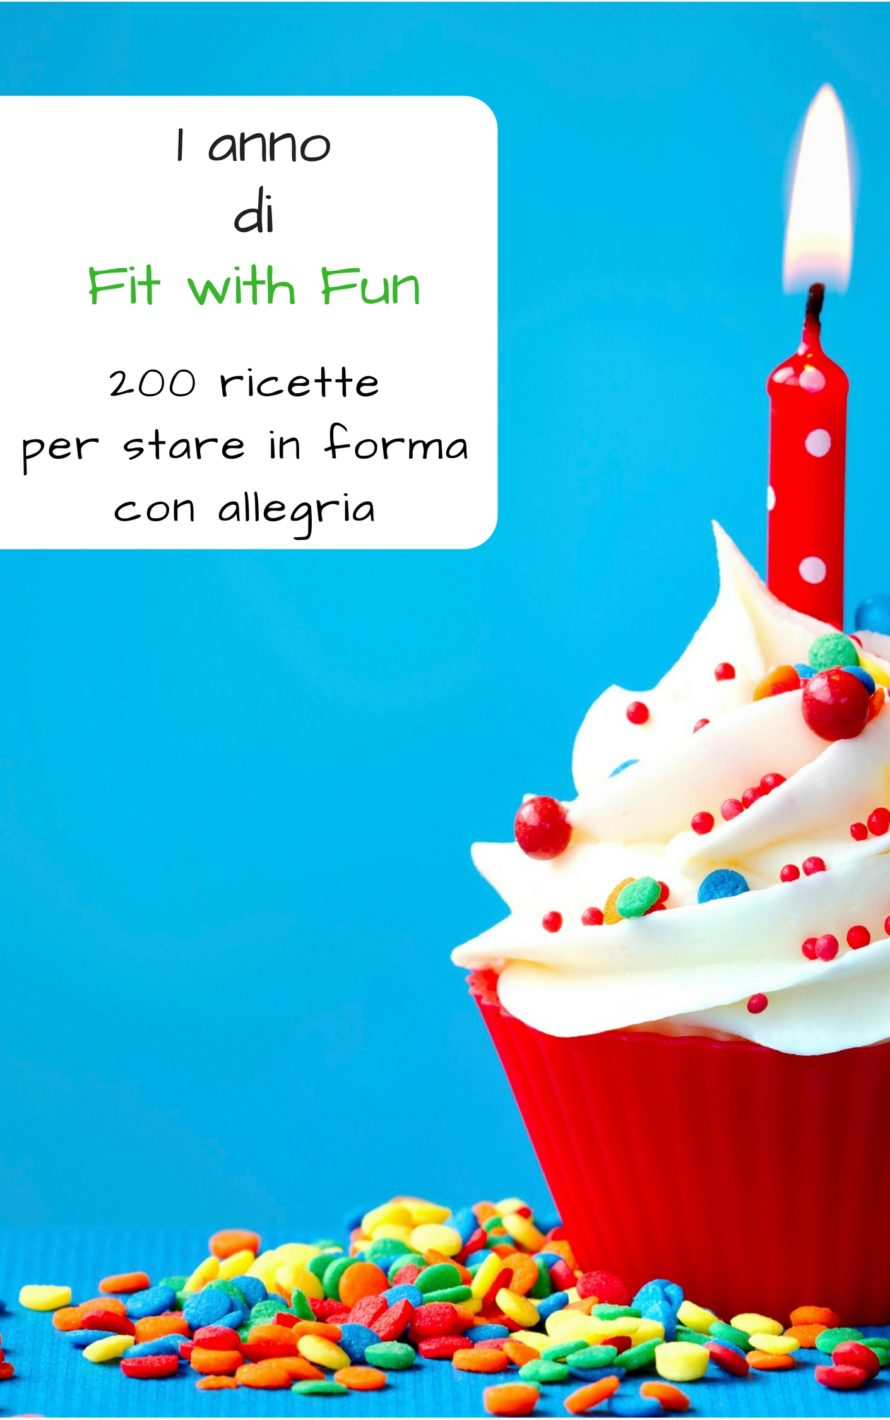 1 anno Fit with Fun - 200 ricette - Ebook Pdf